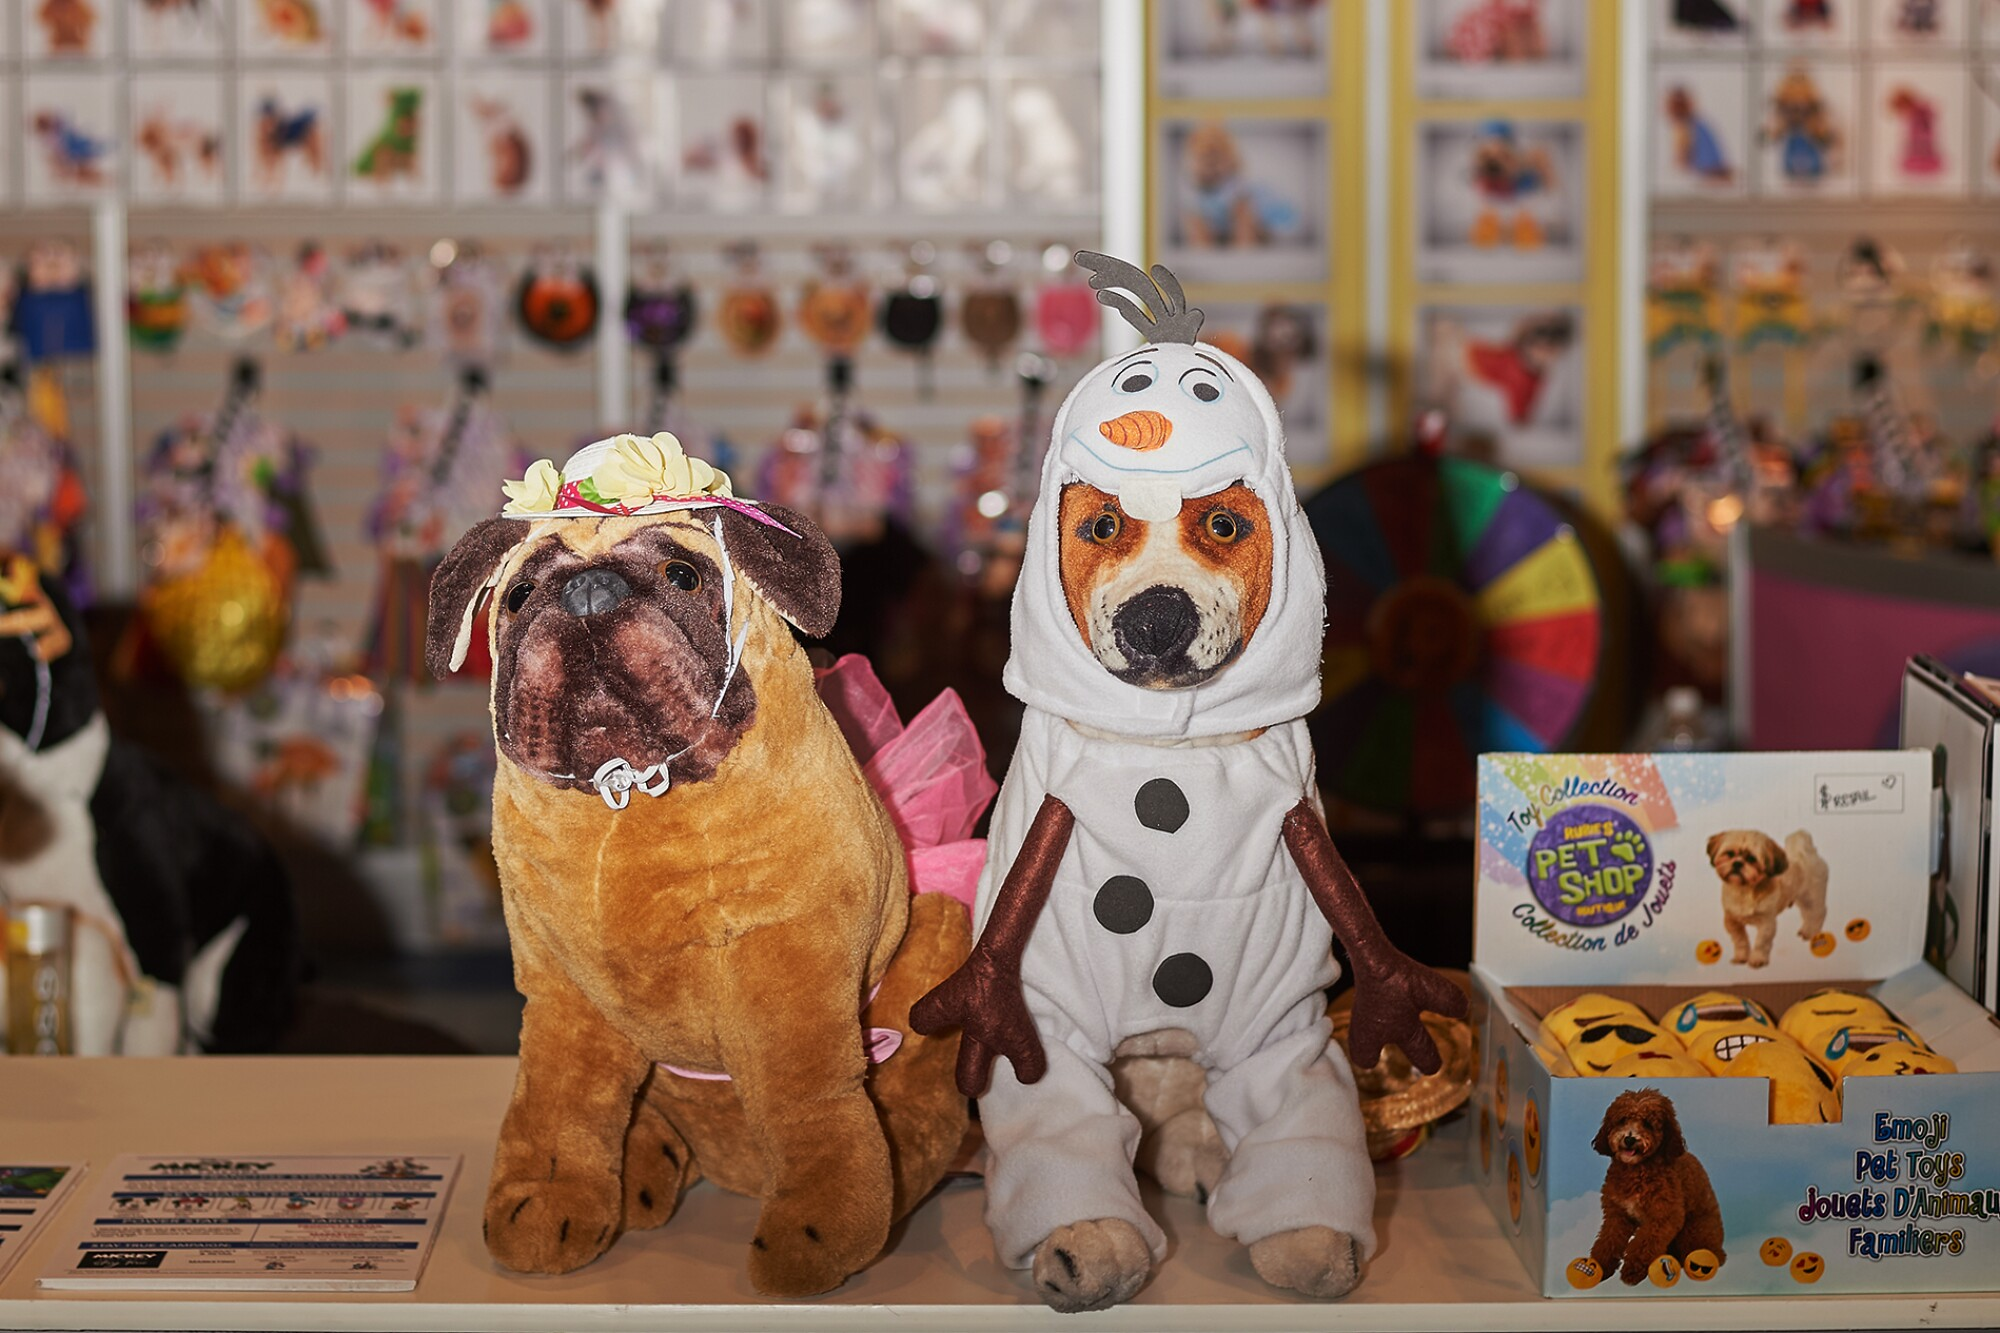 Pet costumes are displayed on stuffed dogs at the Global Pet Expo in Orlando, Fla.